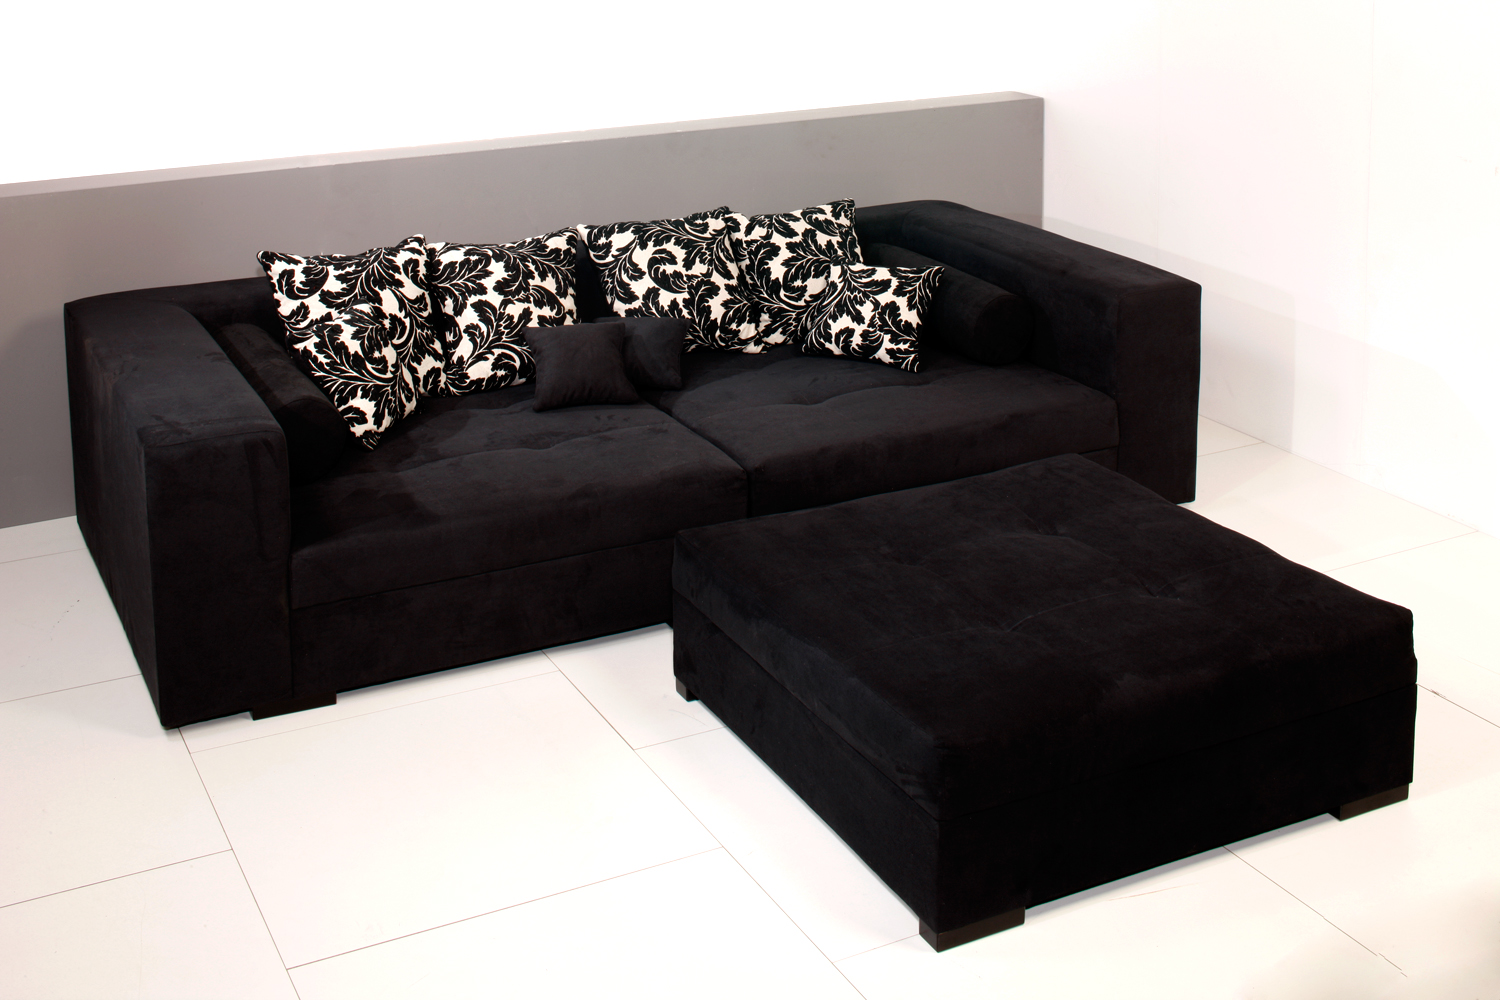 big sofa bettfunktion g nstig kaufen. Black Bedroom Furniture Sets. Home Design Ideas